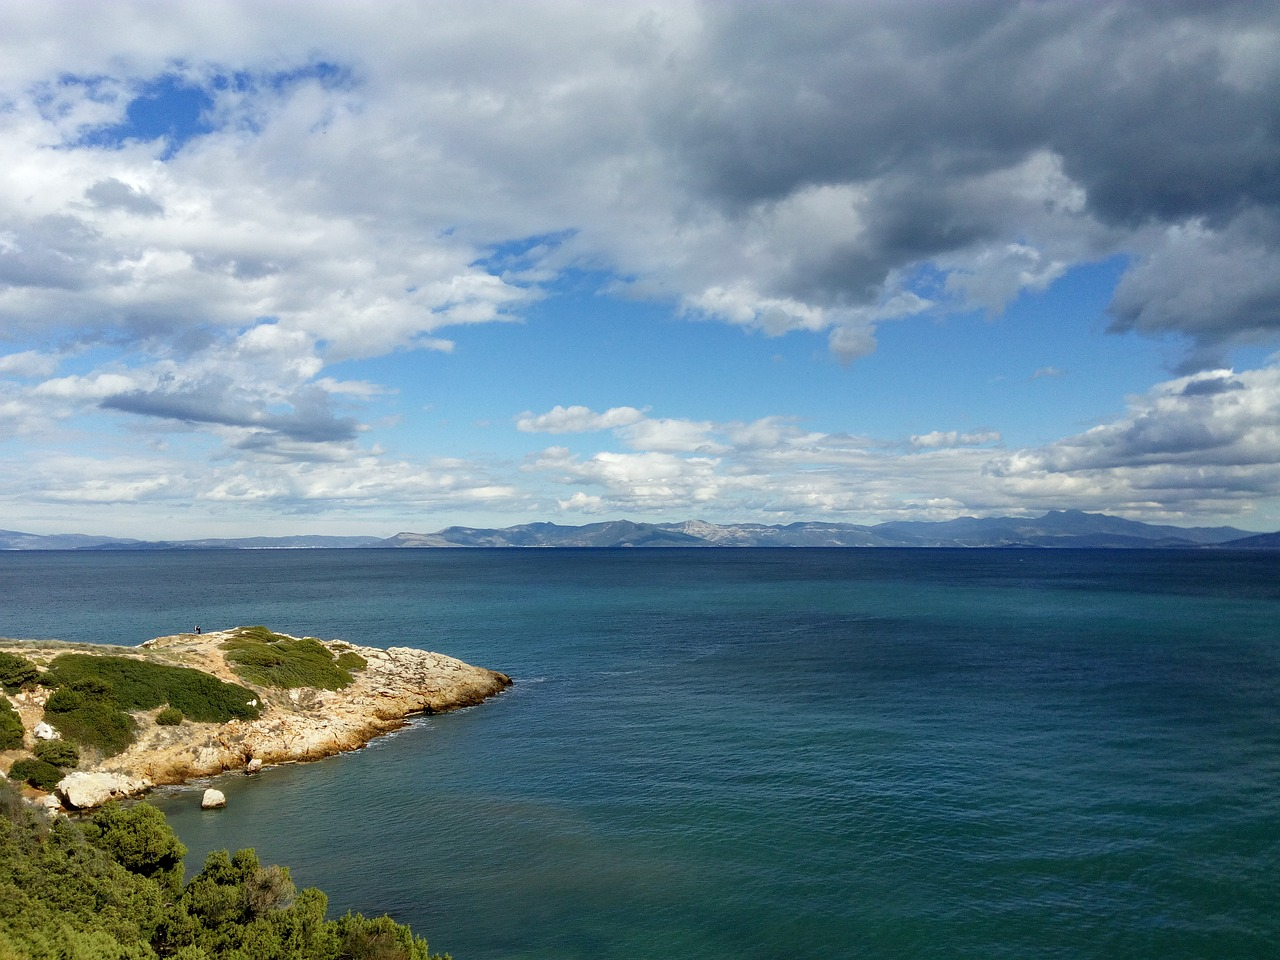 View from Rafina in Attica towards the island of Evia in Greece